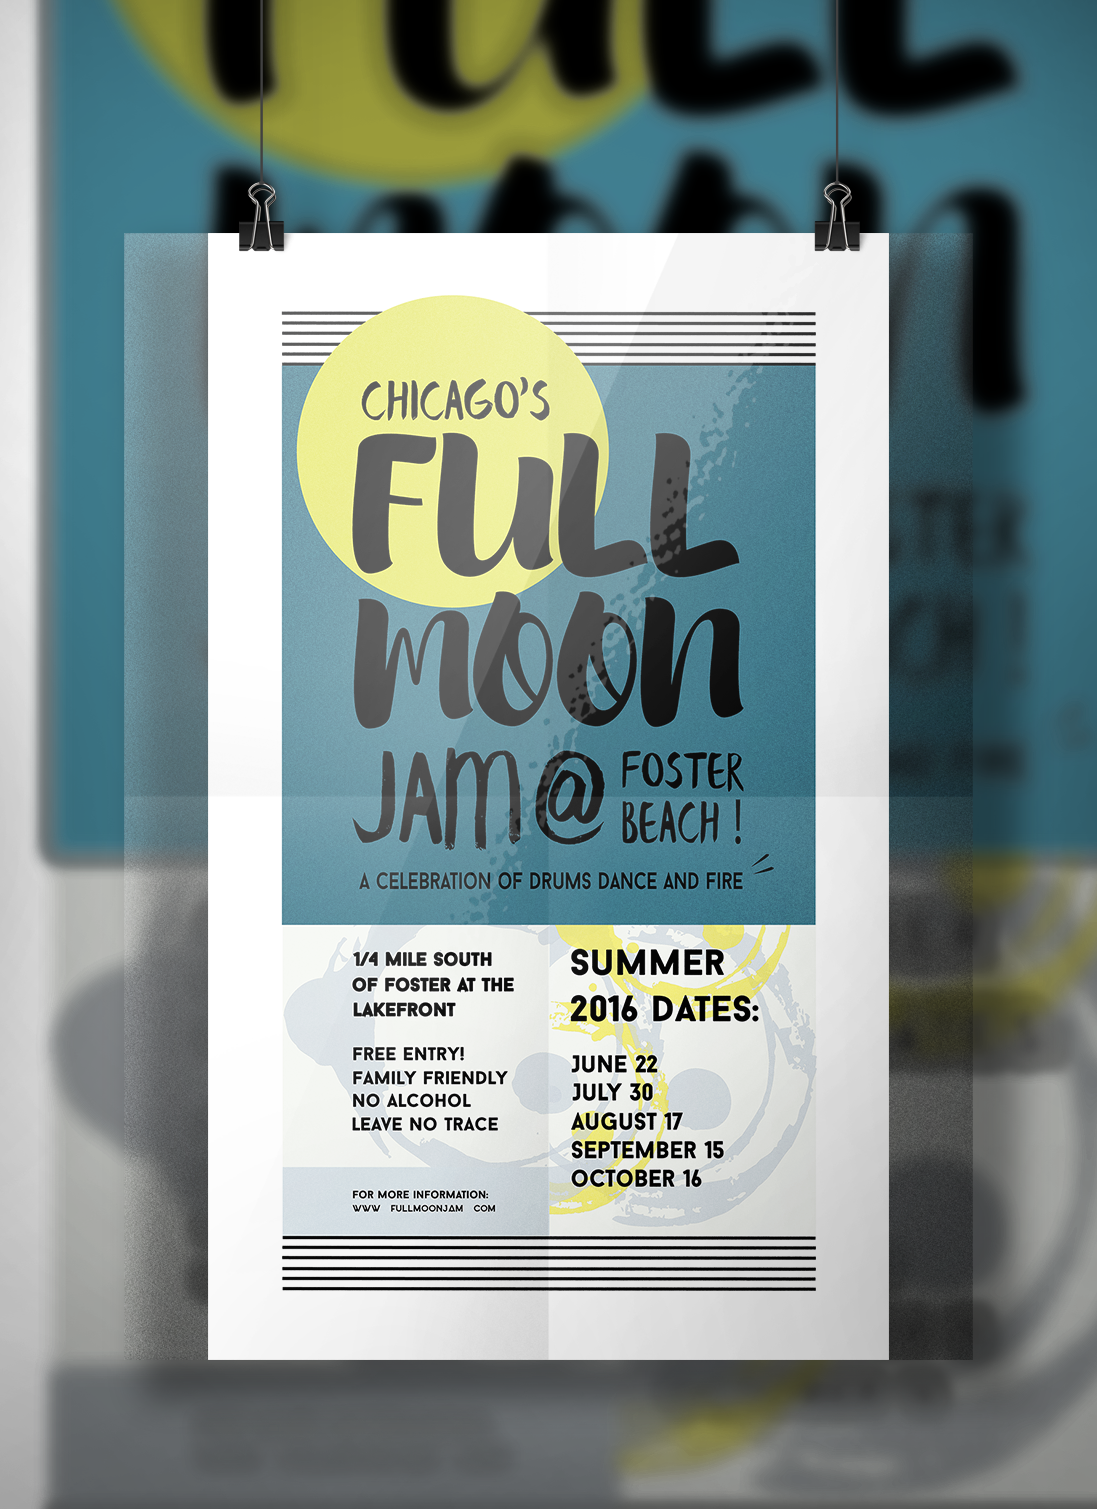 Full Moon Fire Jam - Poster Design on Behance